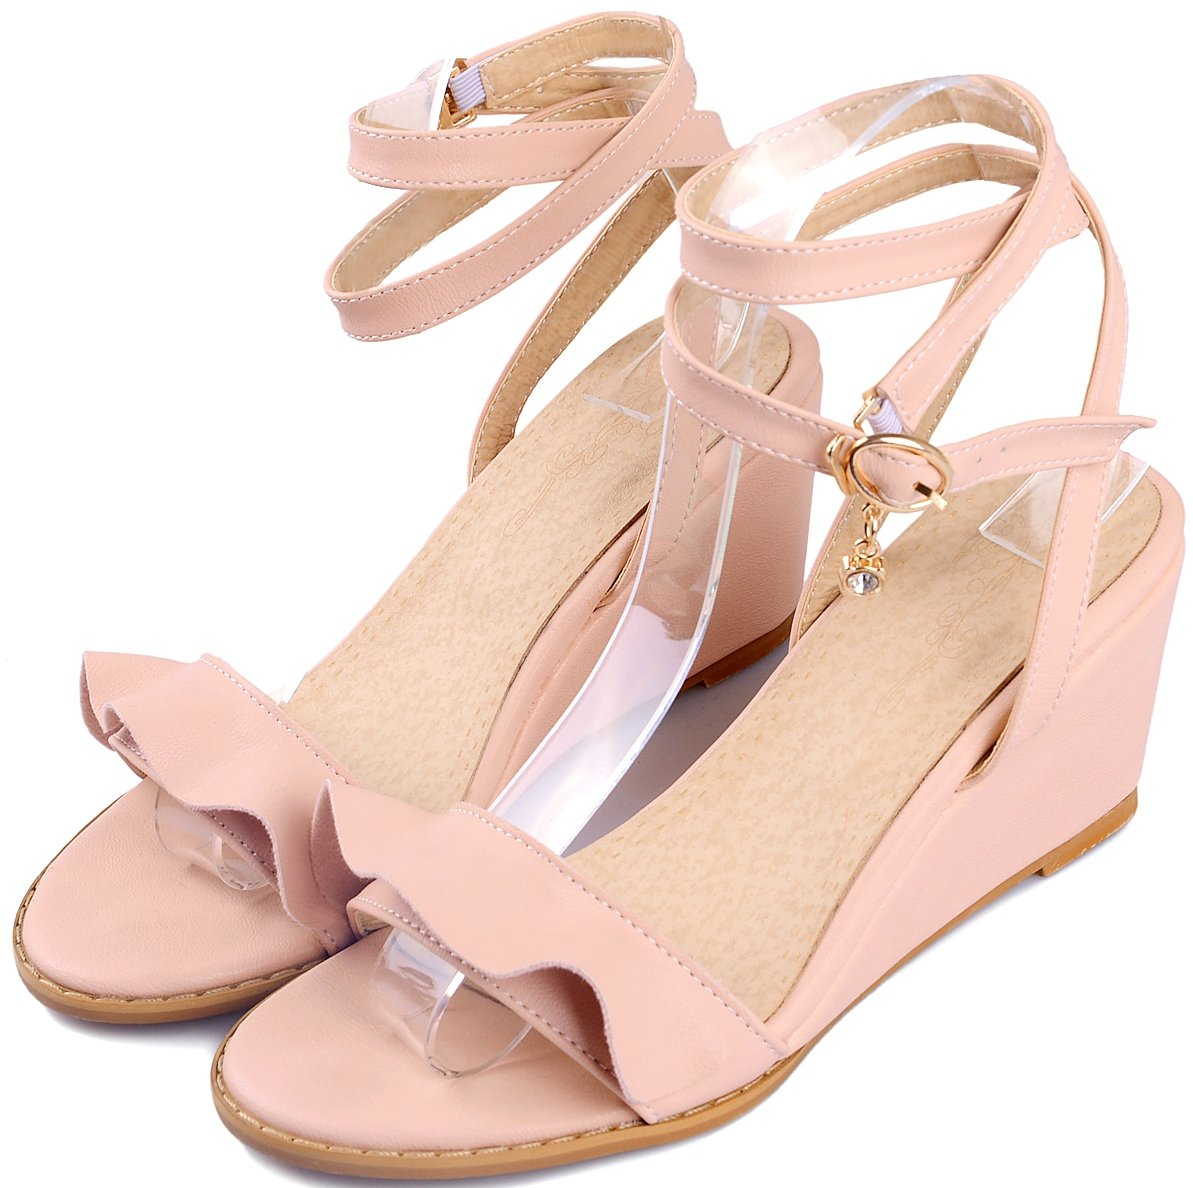 KingRover Women's Band Pendant Open Toe Single Band Women's Ankle Strap Comfy Shoes Mid Heels Wedge Sandals B07BT7YLCF 3 B(M) US|1pink 5091ce